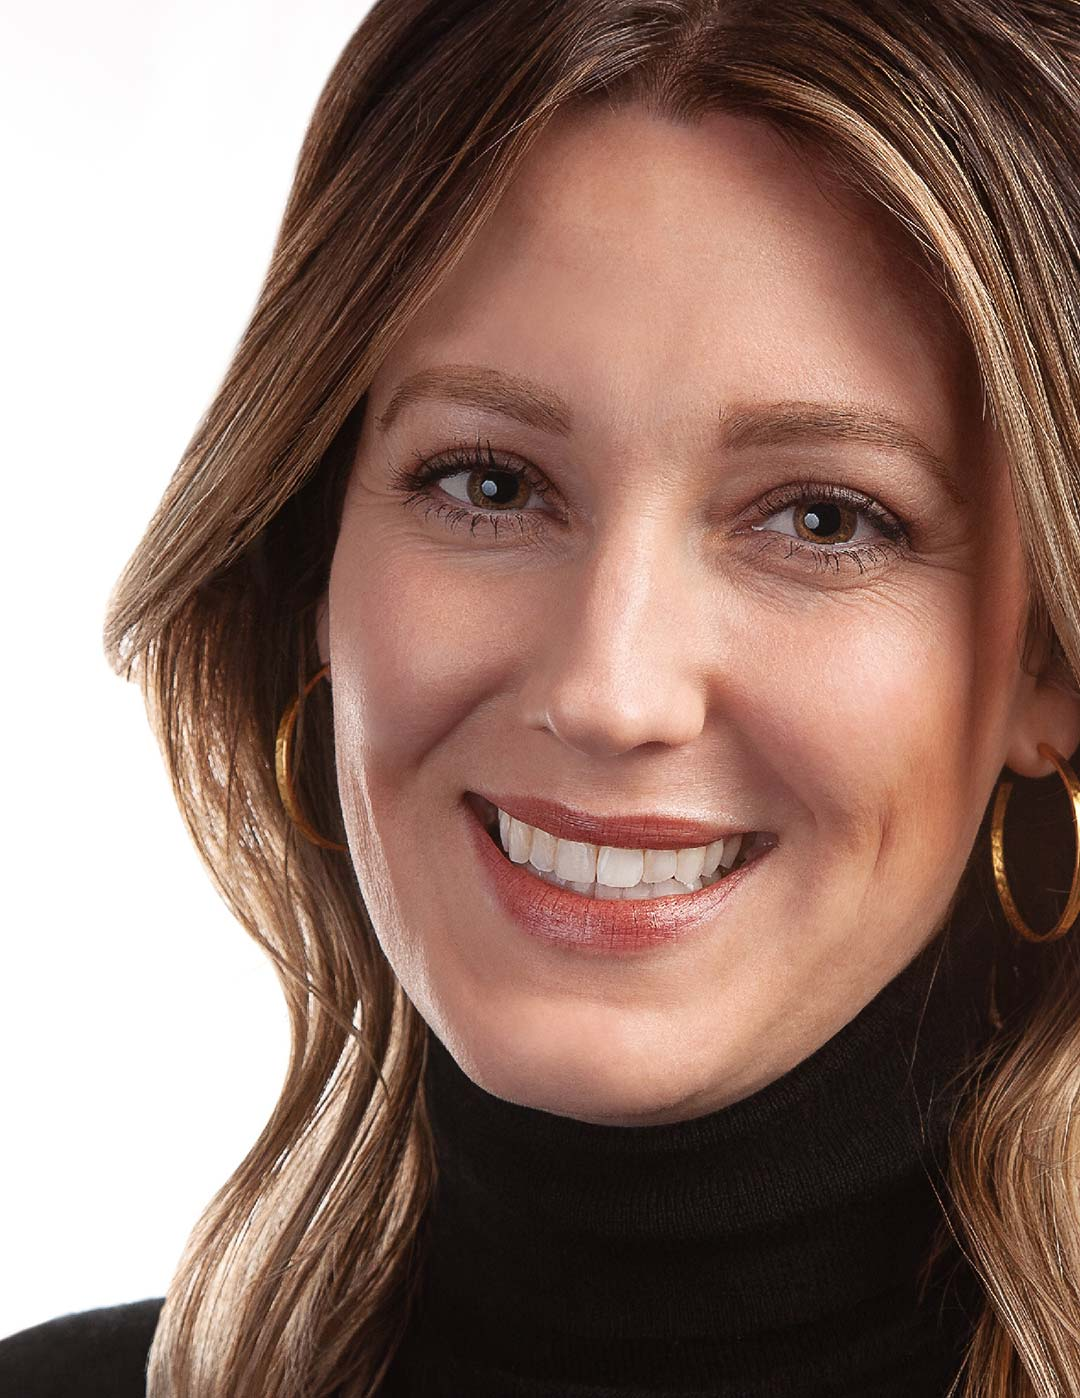 Cropped headshot of Lacie Leatherman, CEO of ZipSip